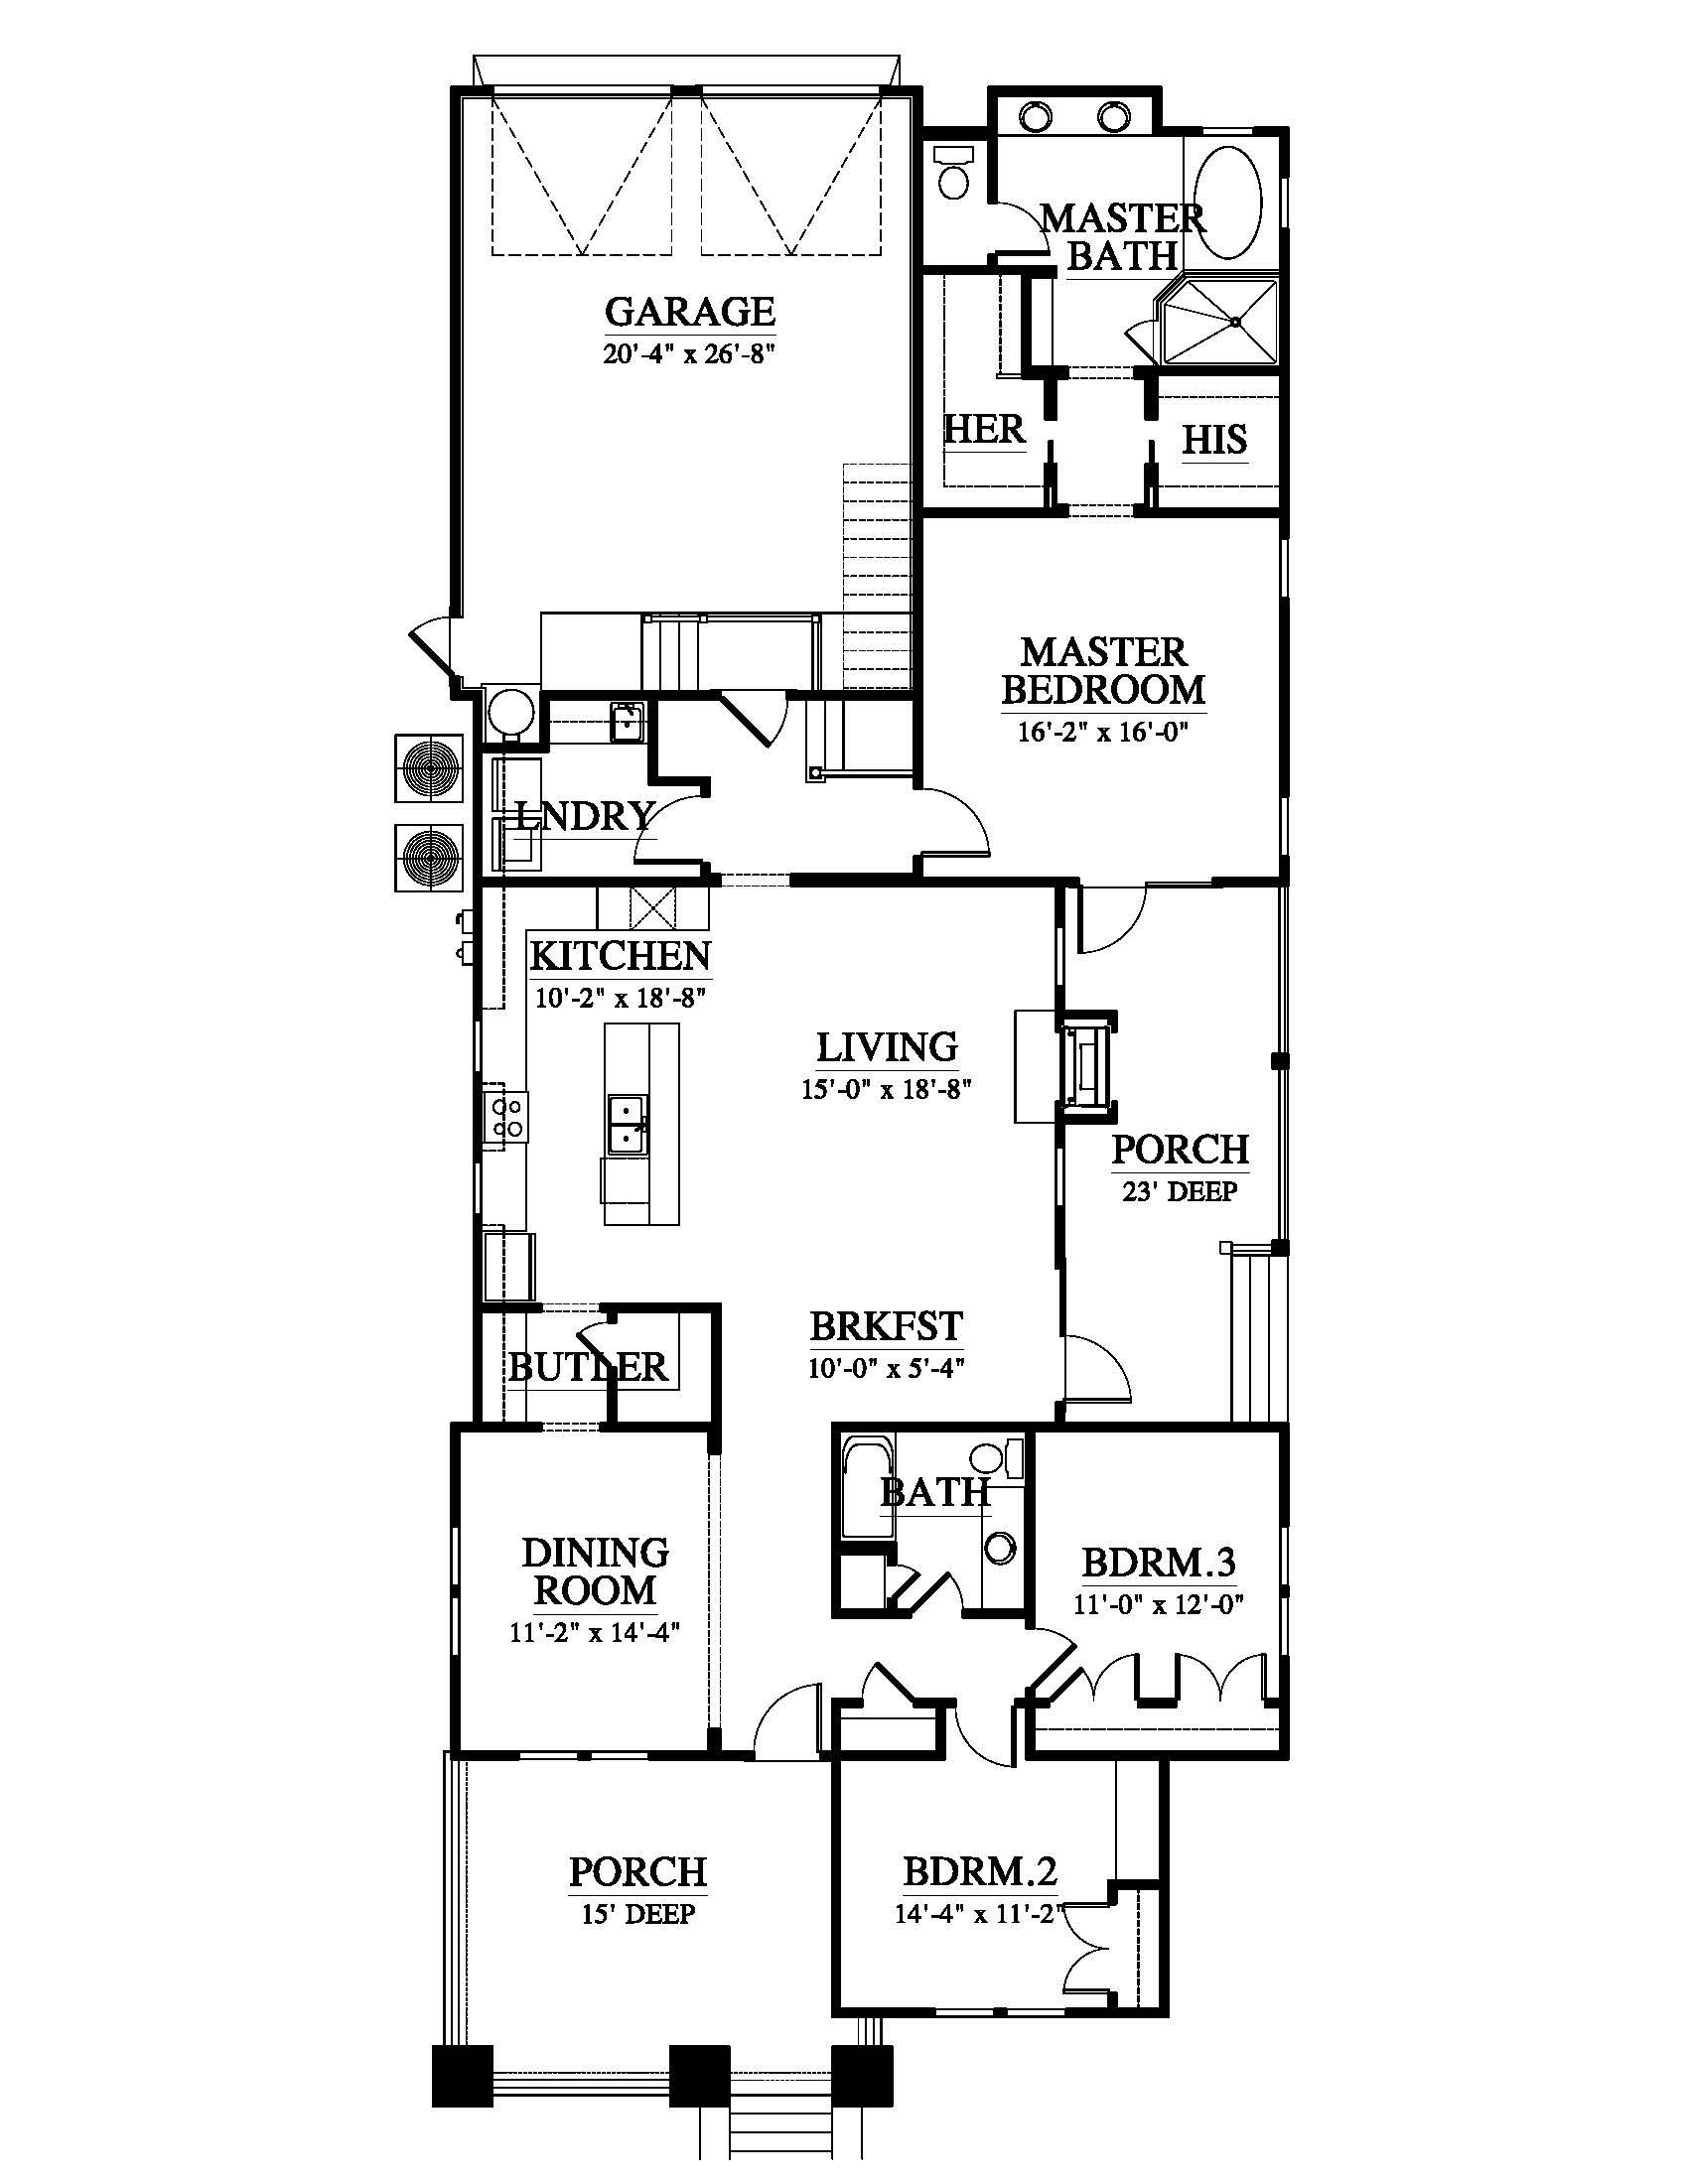 Chesapeake Bungalow 10325 House Plan 10325 Design From Allison Ramsey Architects House Plans Cottage House Plans How To Plan